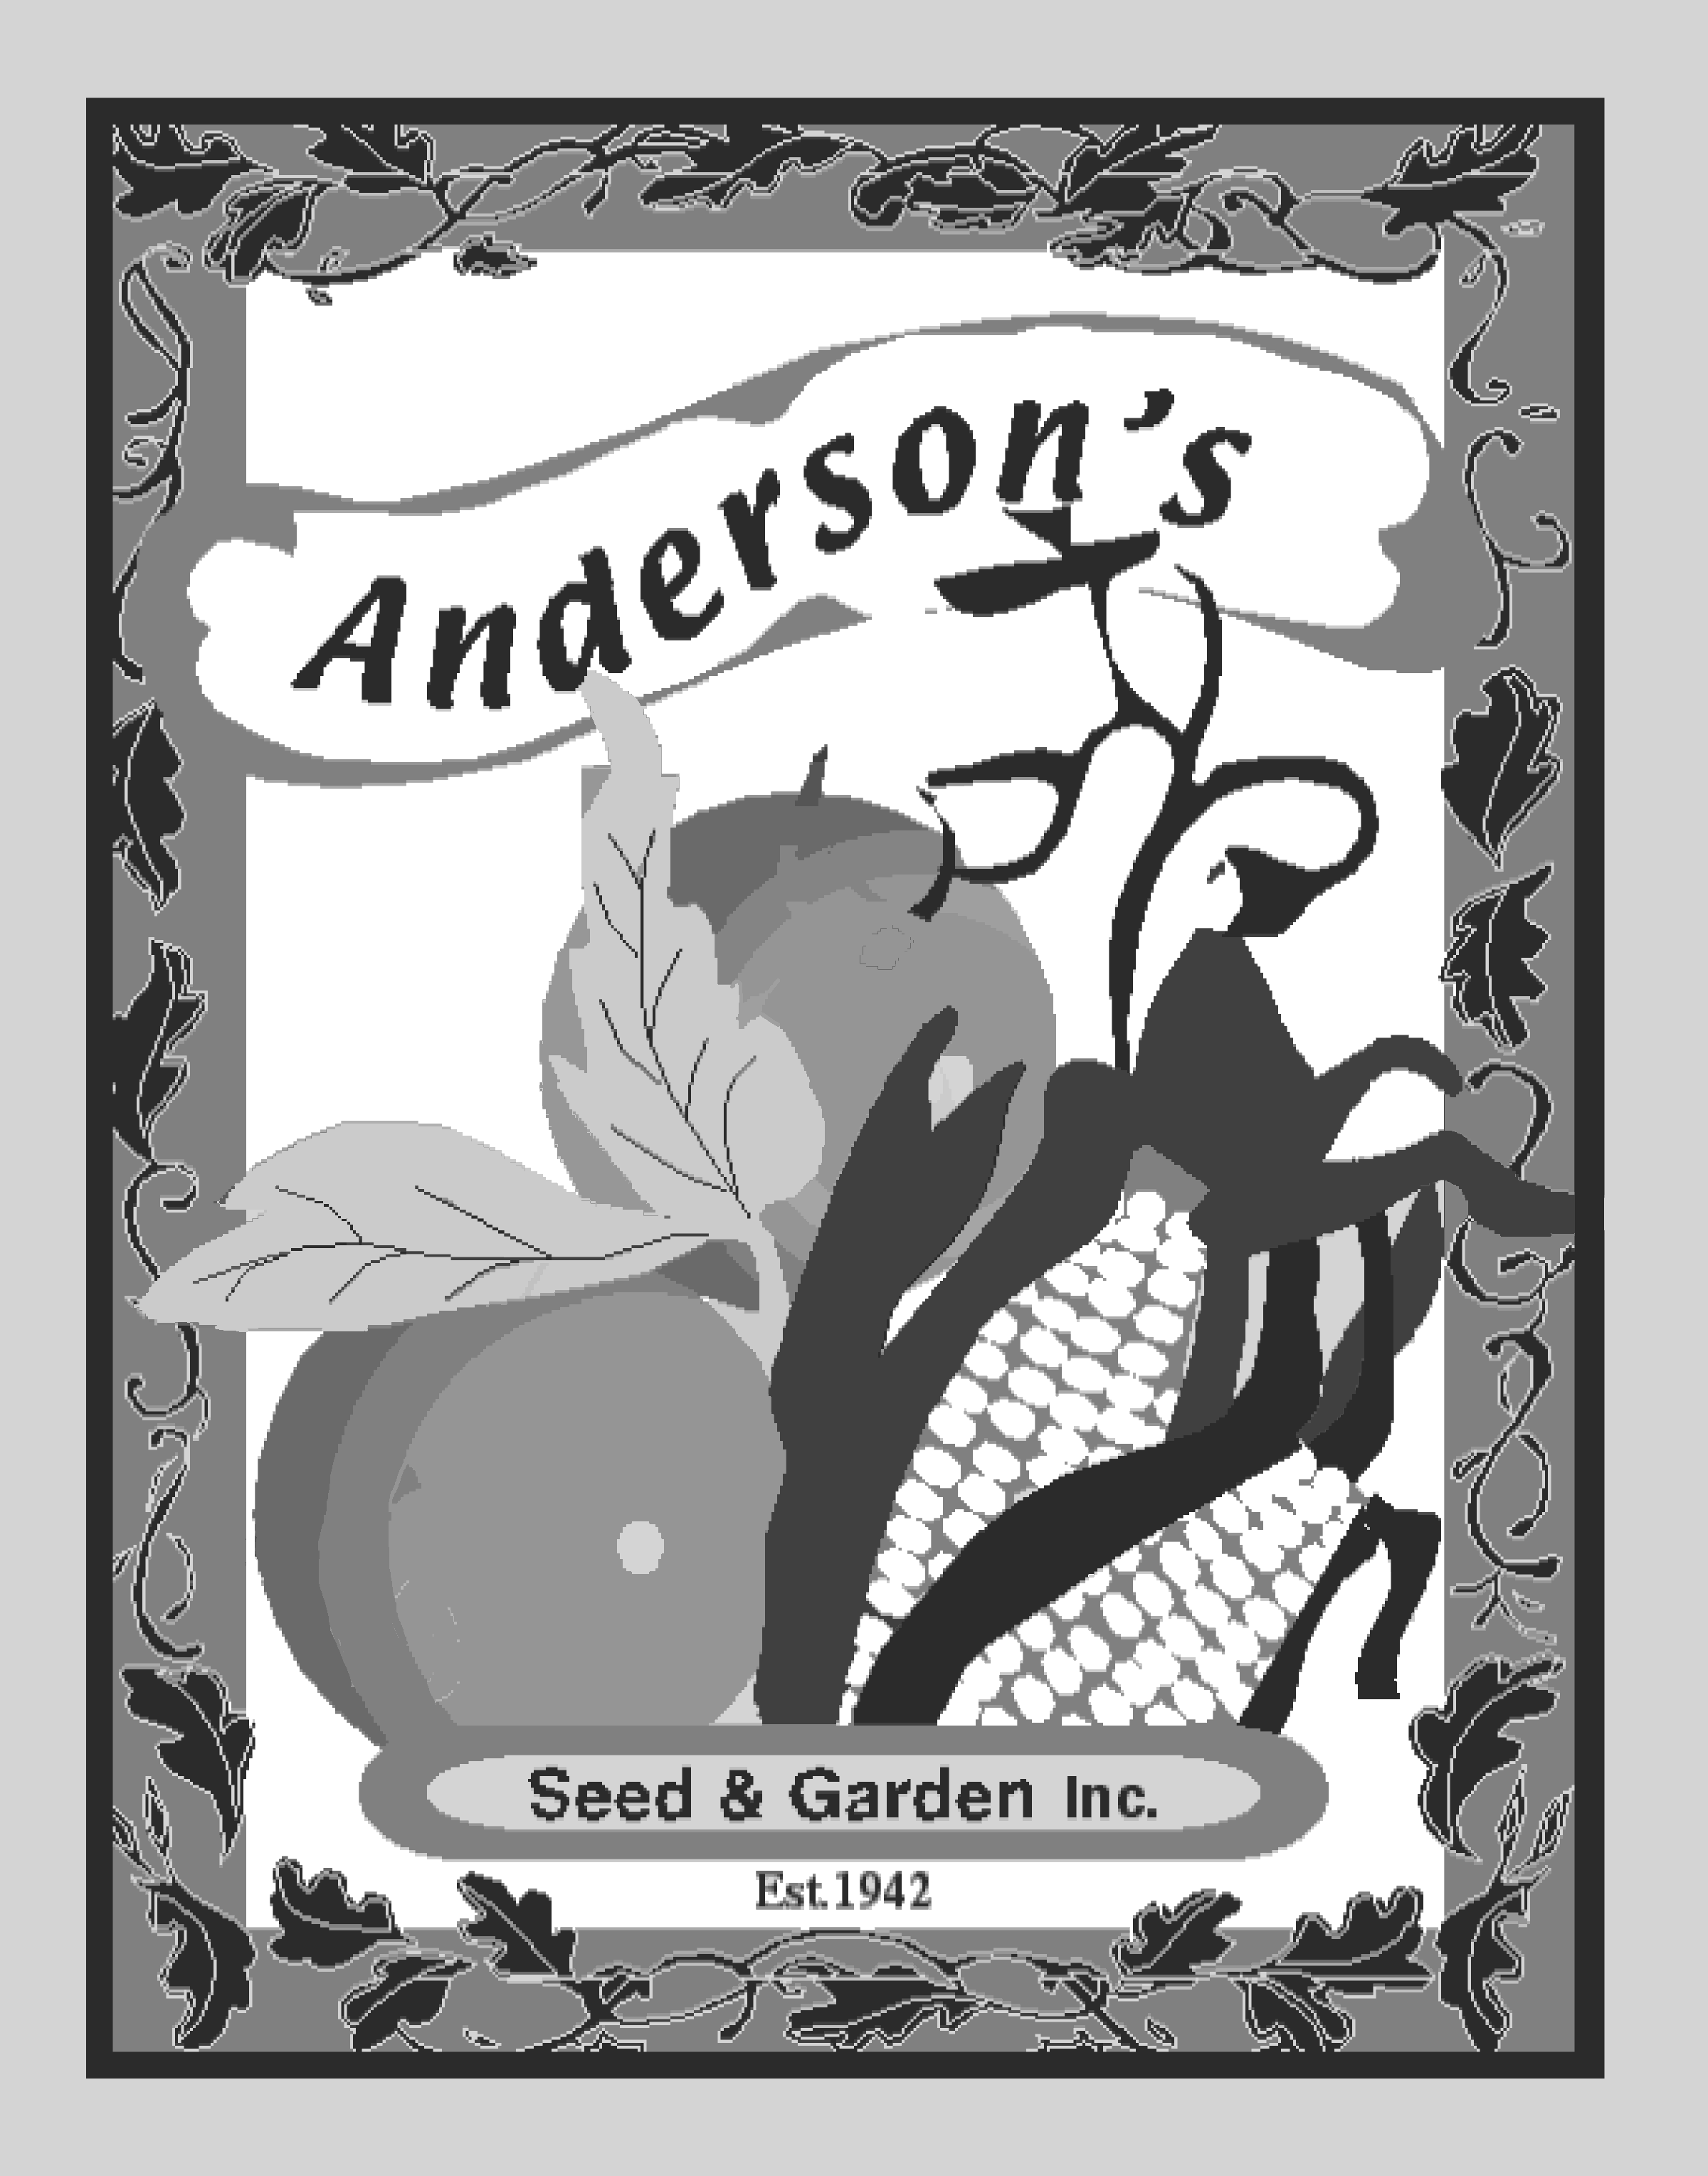 Golden Hubbard Heirloom Winter Squash Seed 1 oz.